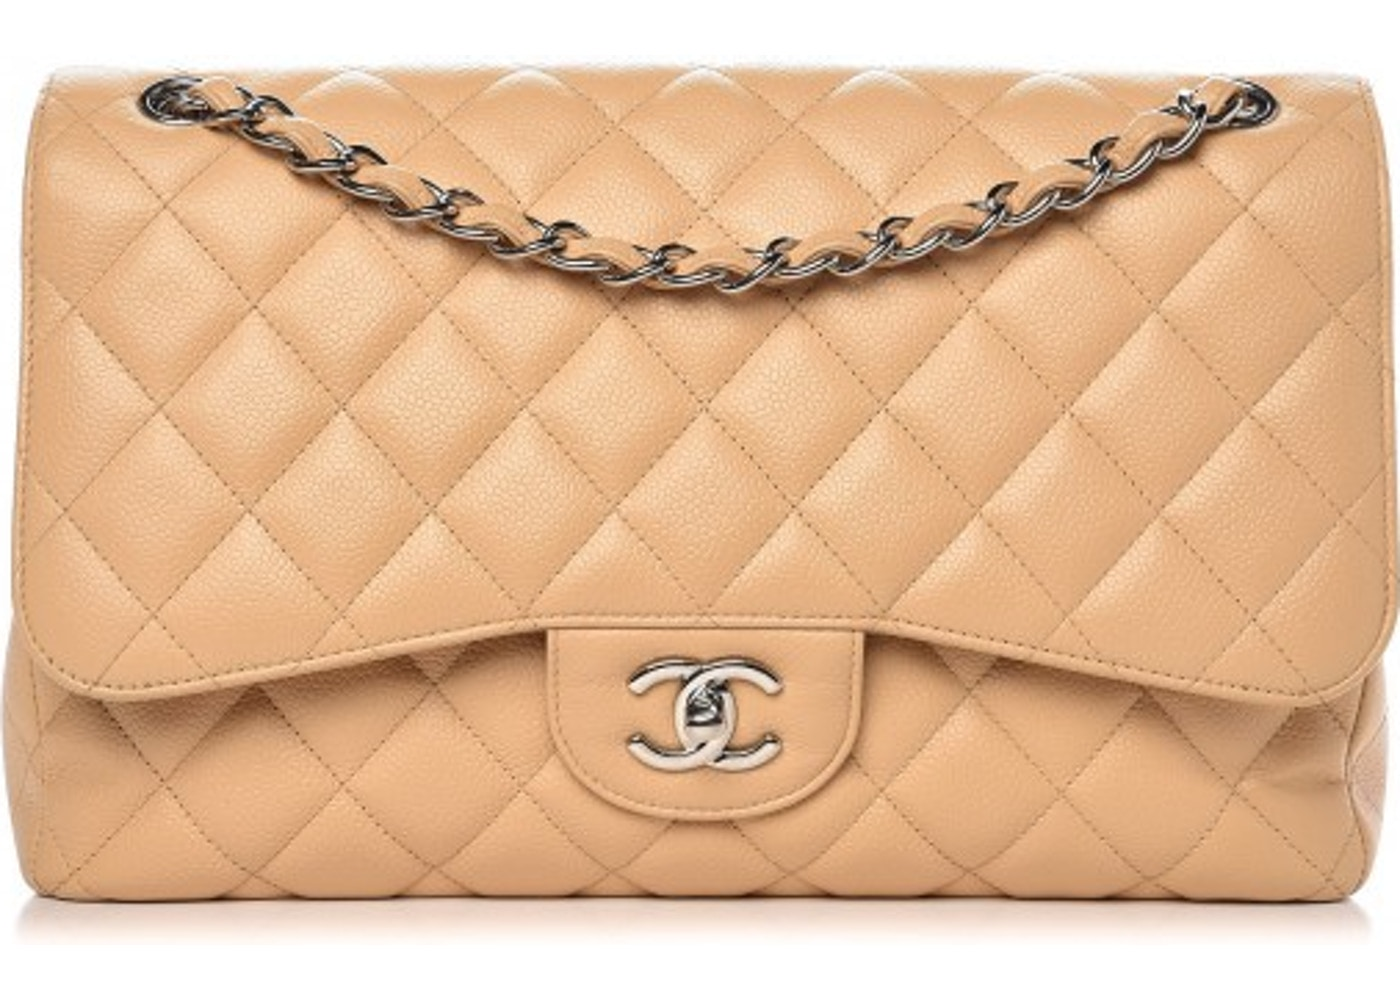 dcaa43423216 Chanel Classic Double Flap Quilted Jumbo Beige Clair. Quilted Jumbo Beige  Clair